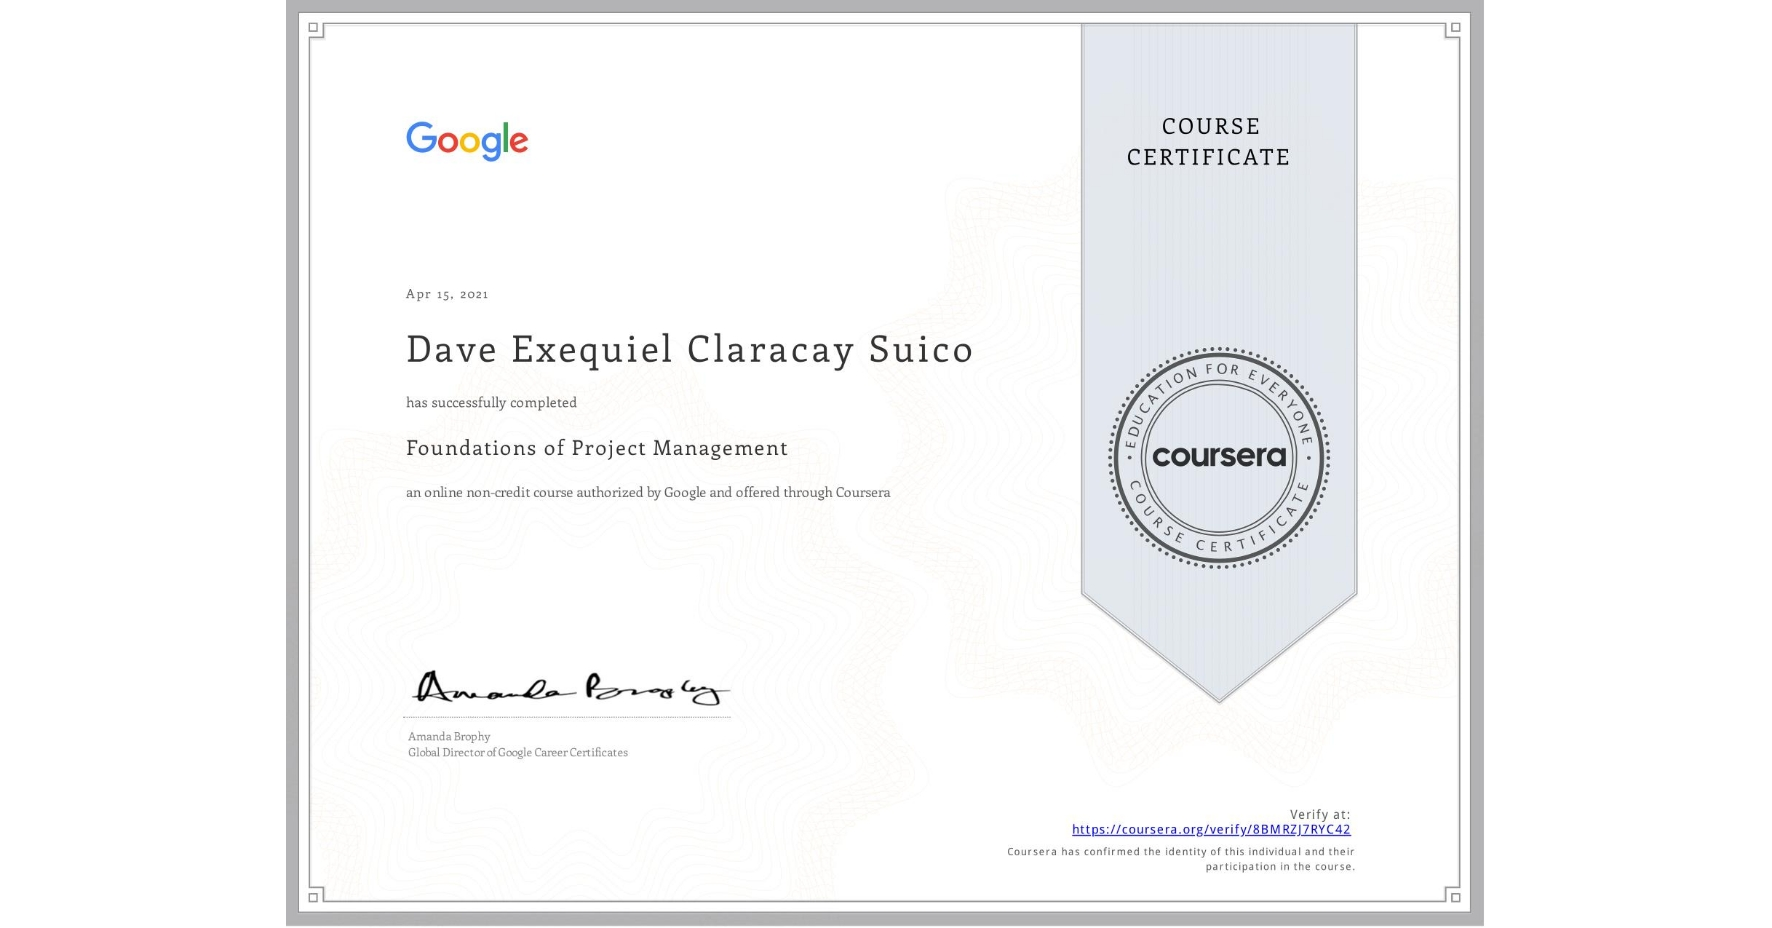 View certificate for Dave Exequiel Claracay Suico, Foundations of Project Management, an online non-credit course authorized by Google and offered through Coursera